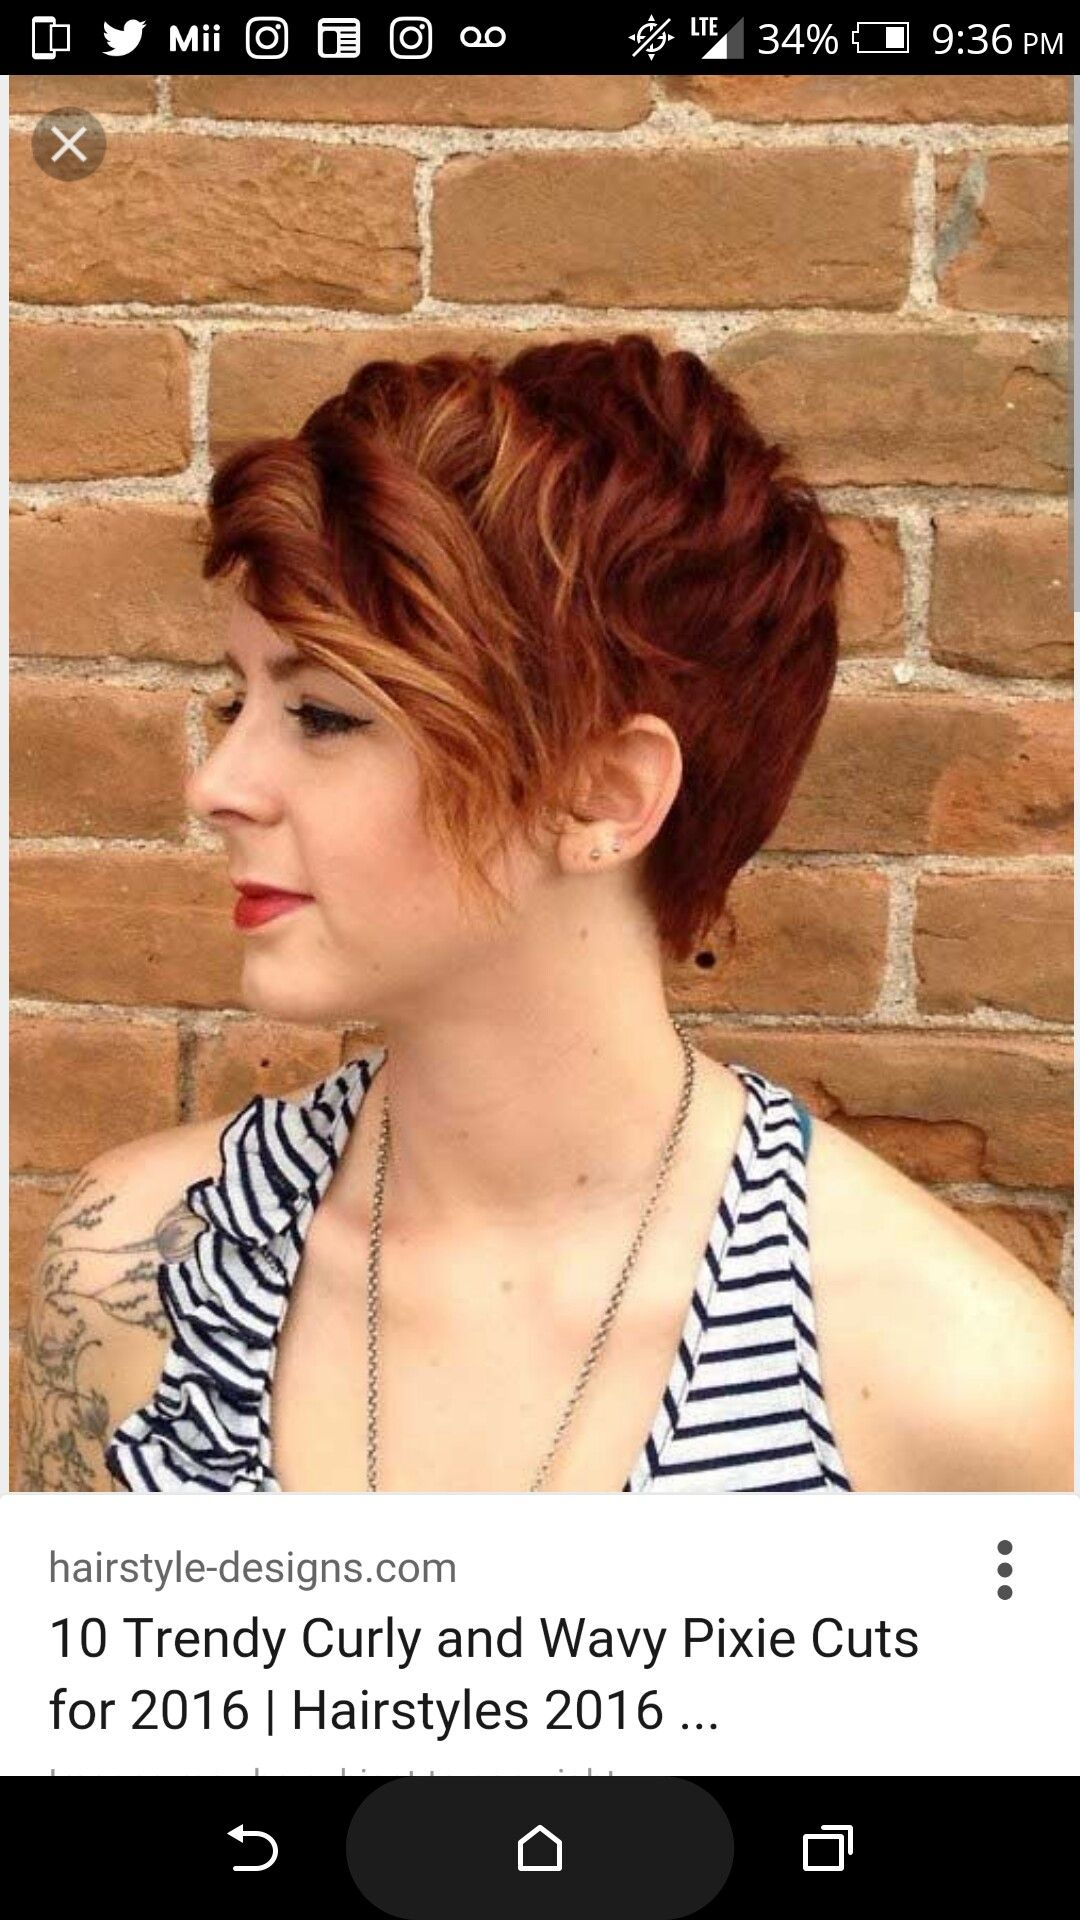 Pin by emily irwin on hair ideas pinterest